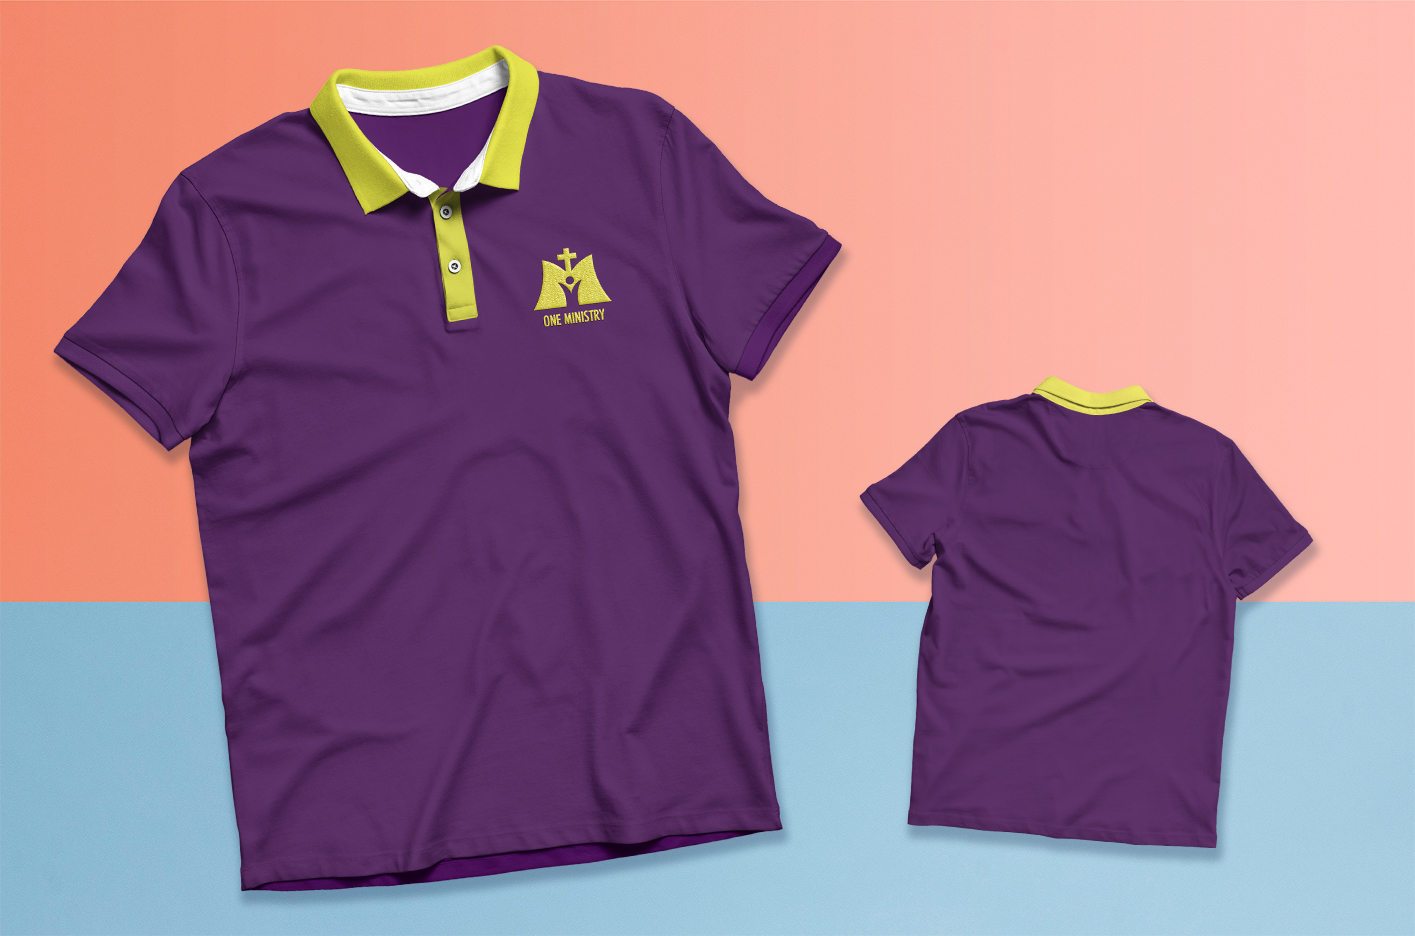 One Ministry Polo Shirt Design